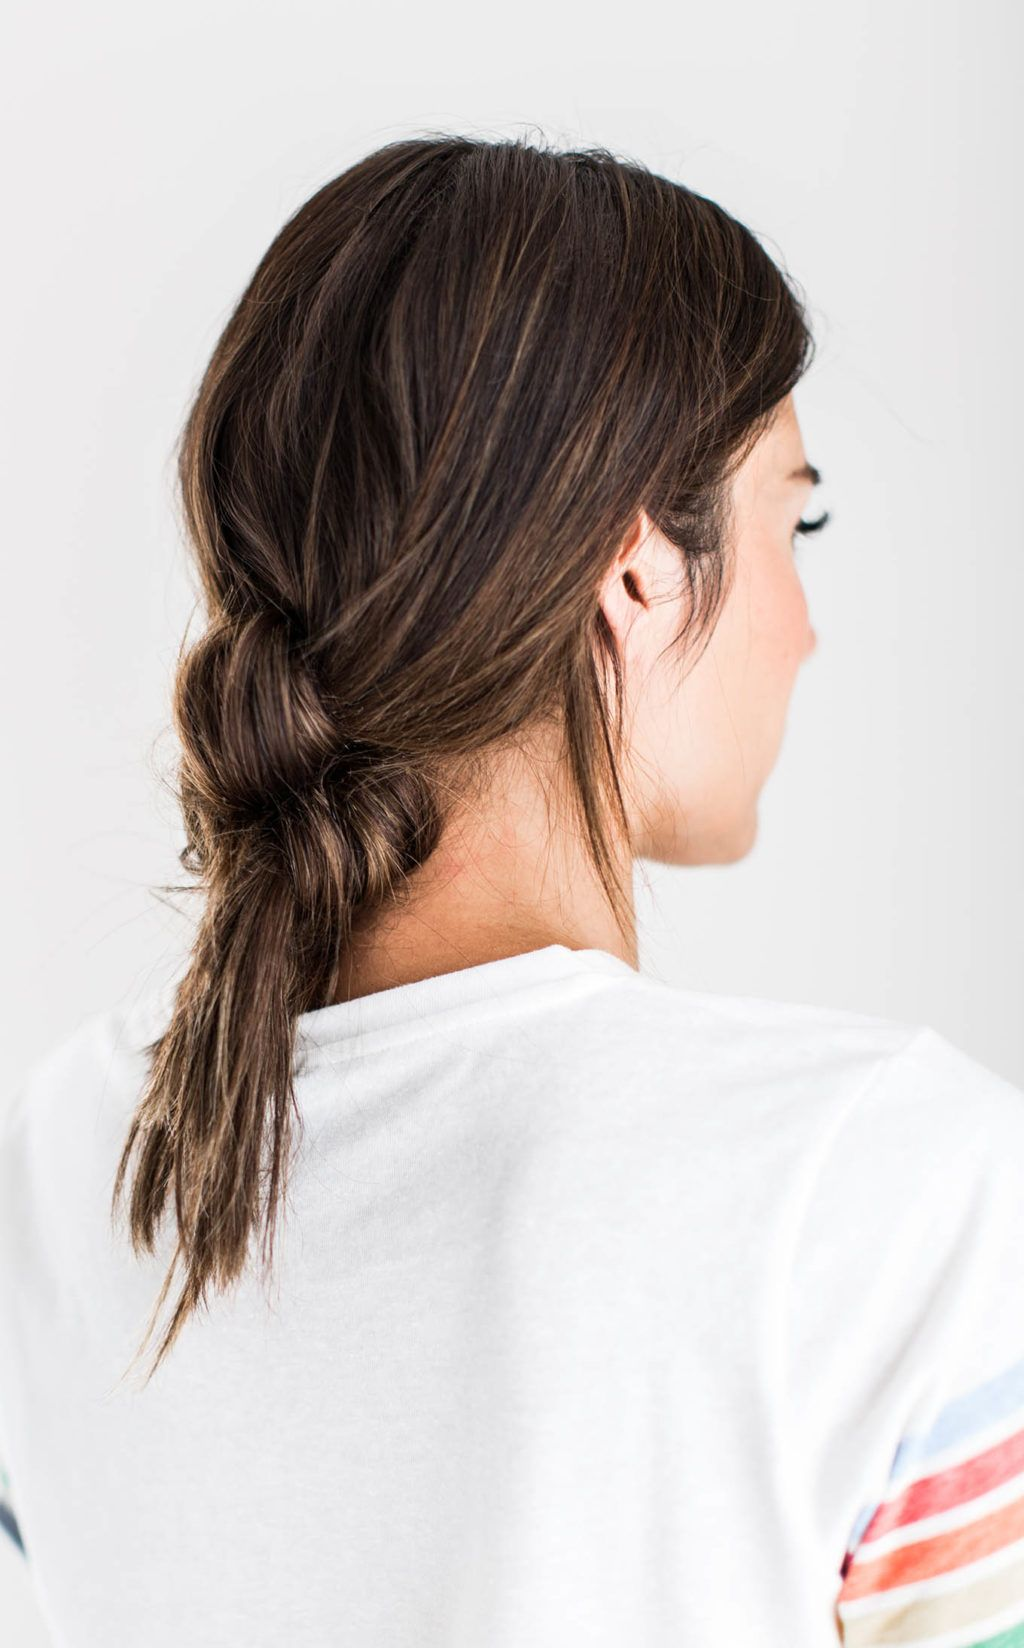 Messy knotted pony girls pinterest fast easy hairstyles easy